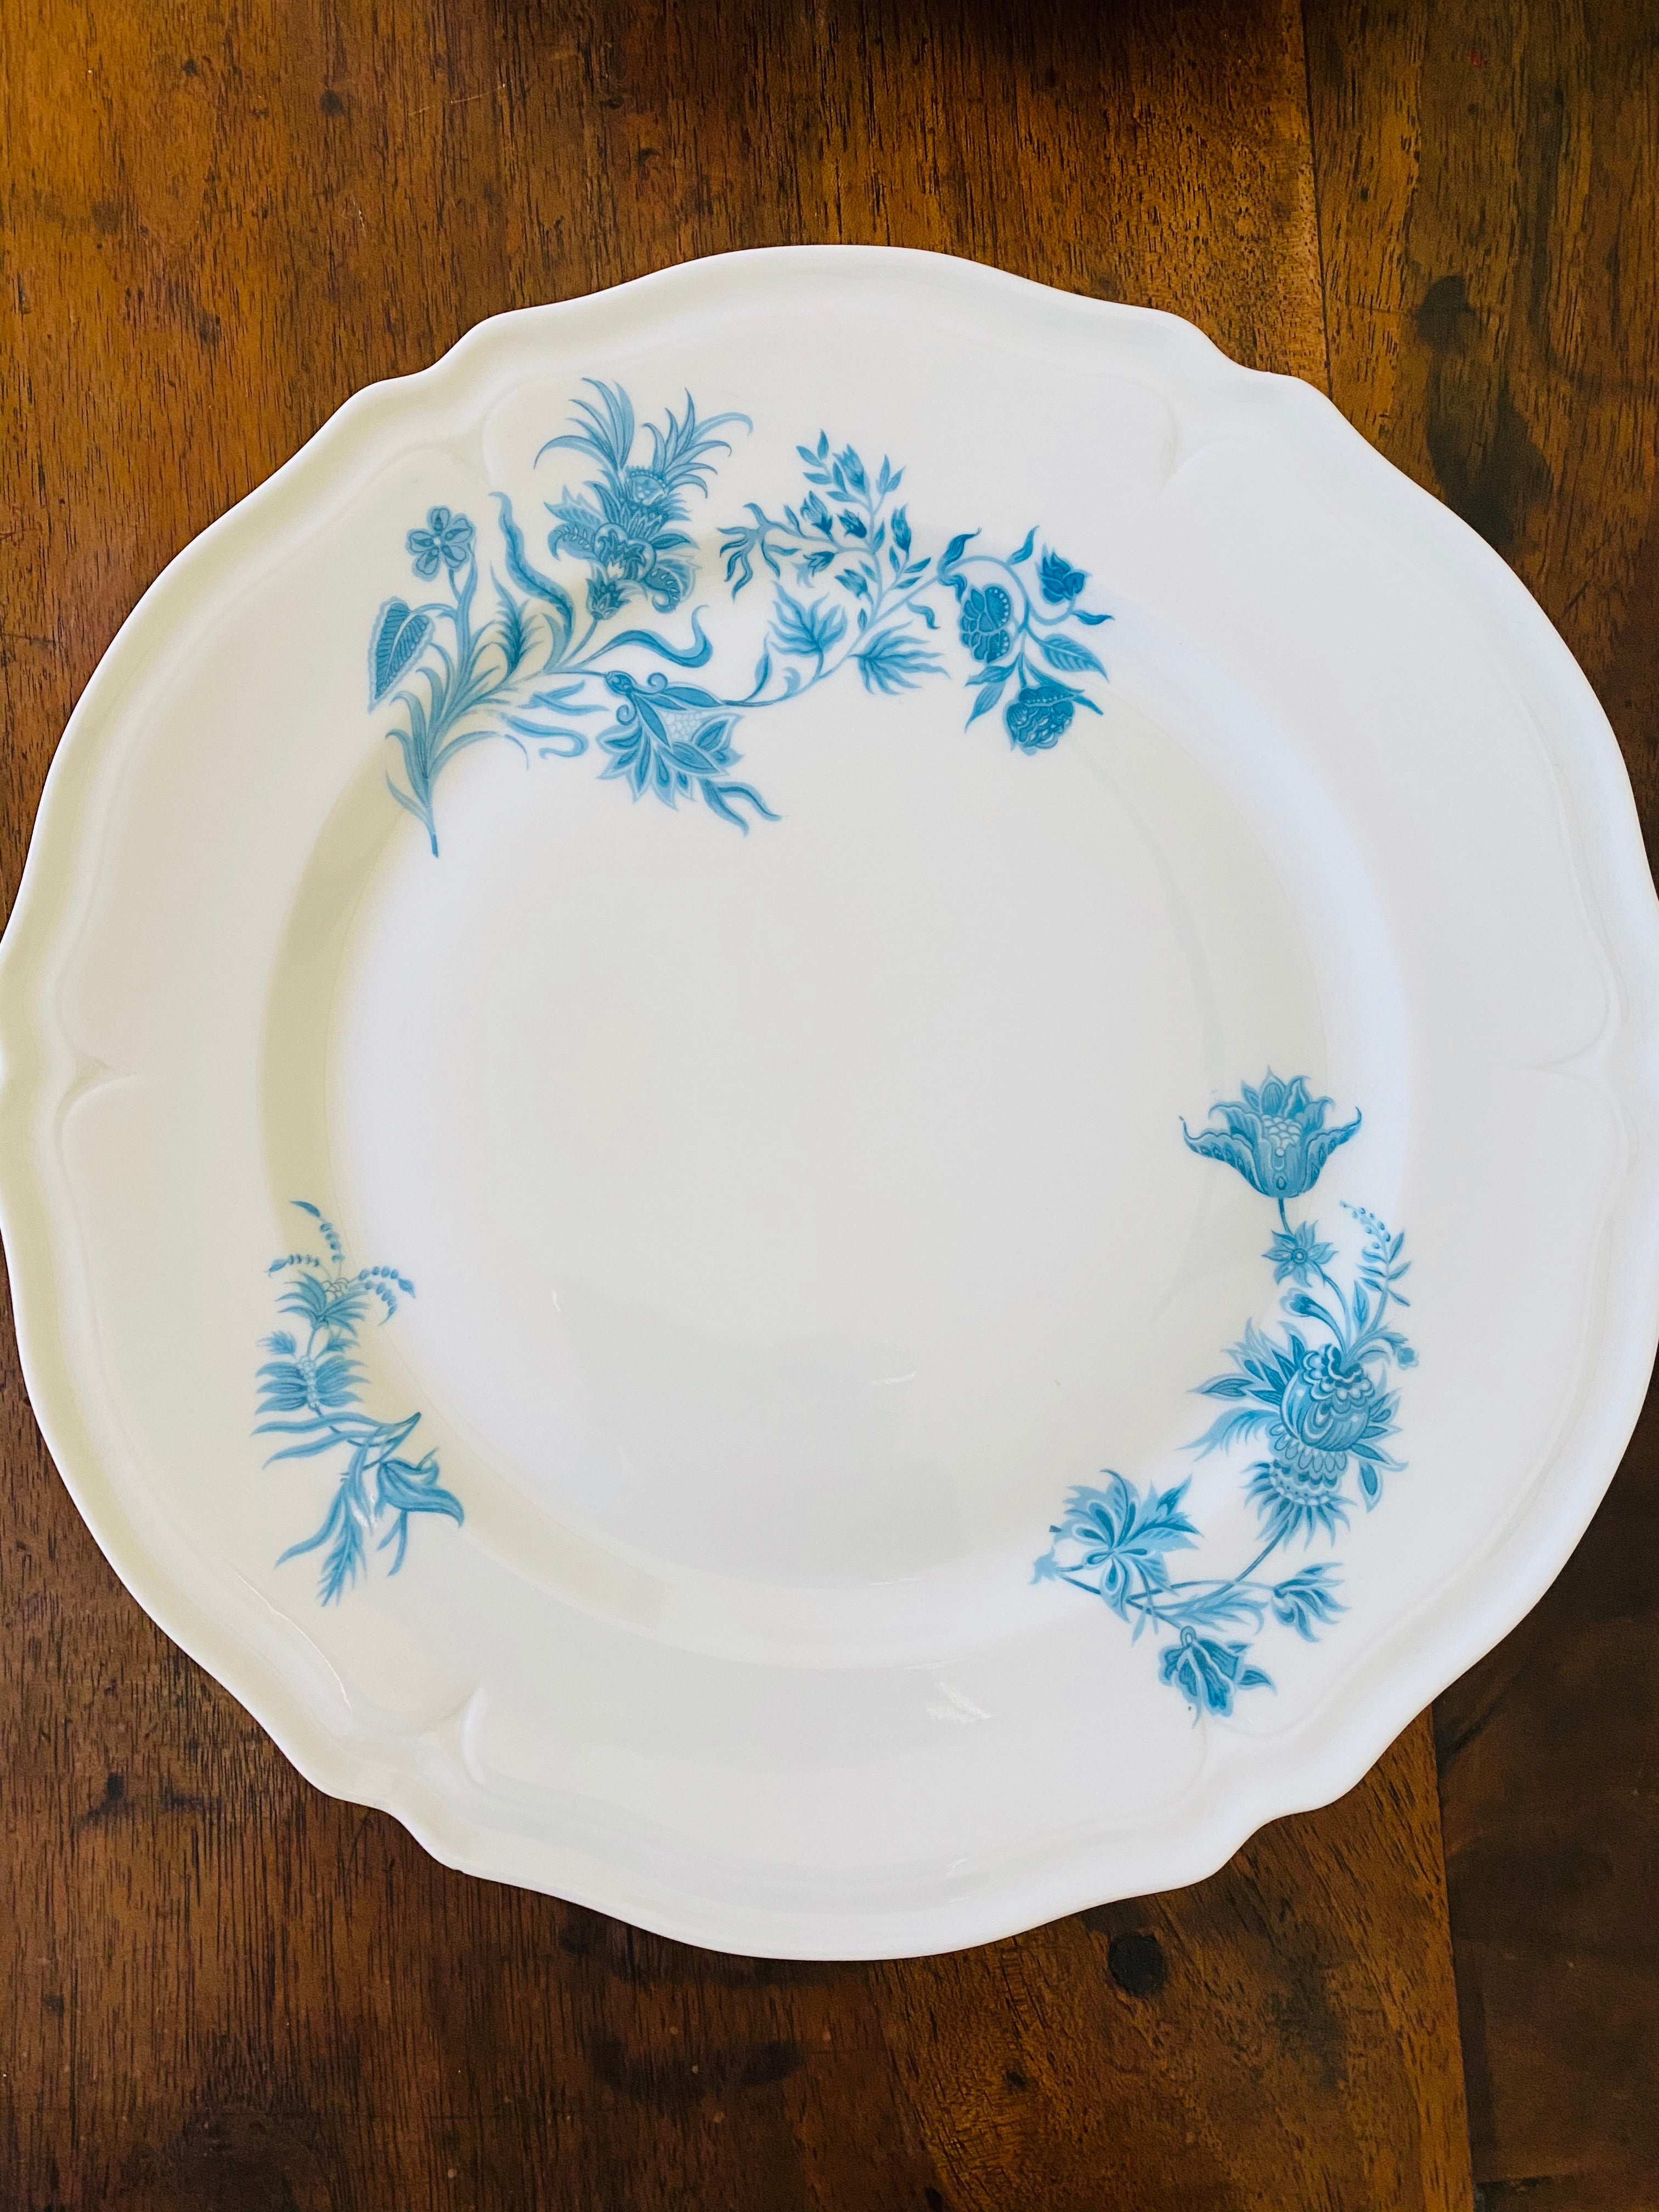 Giraud Limoges Porcelain Dinner Plates, Set of 6